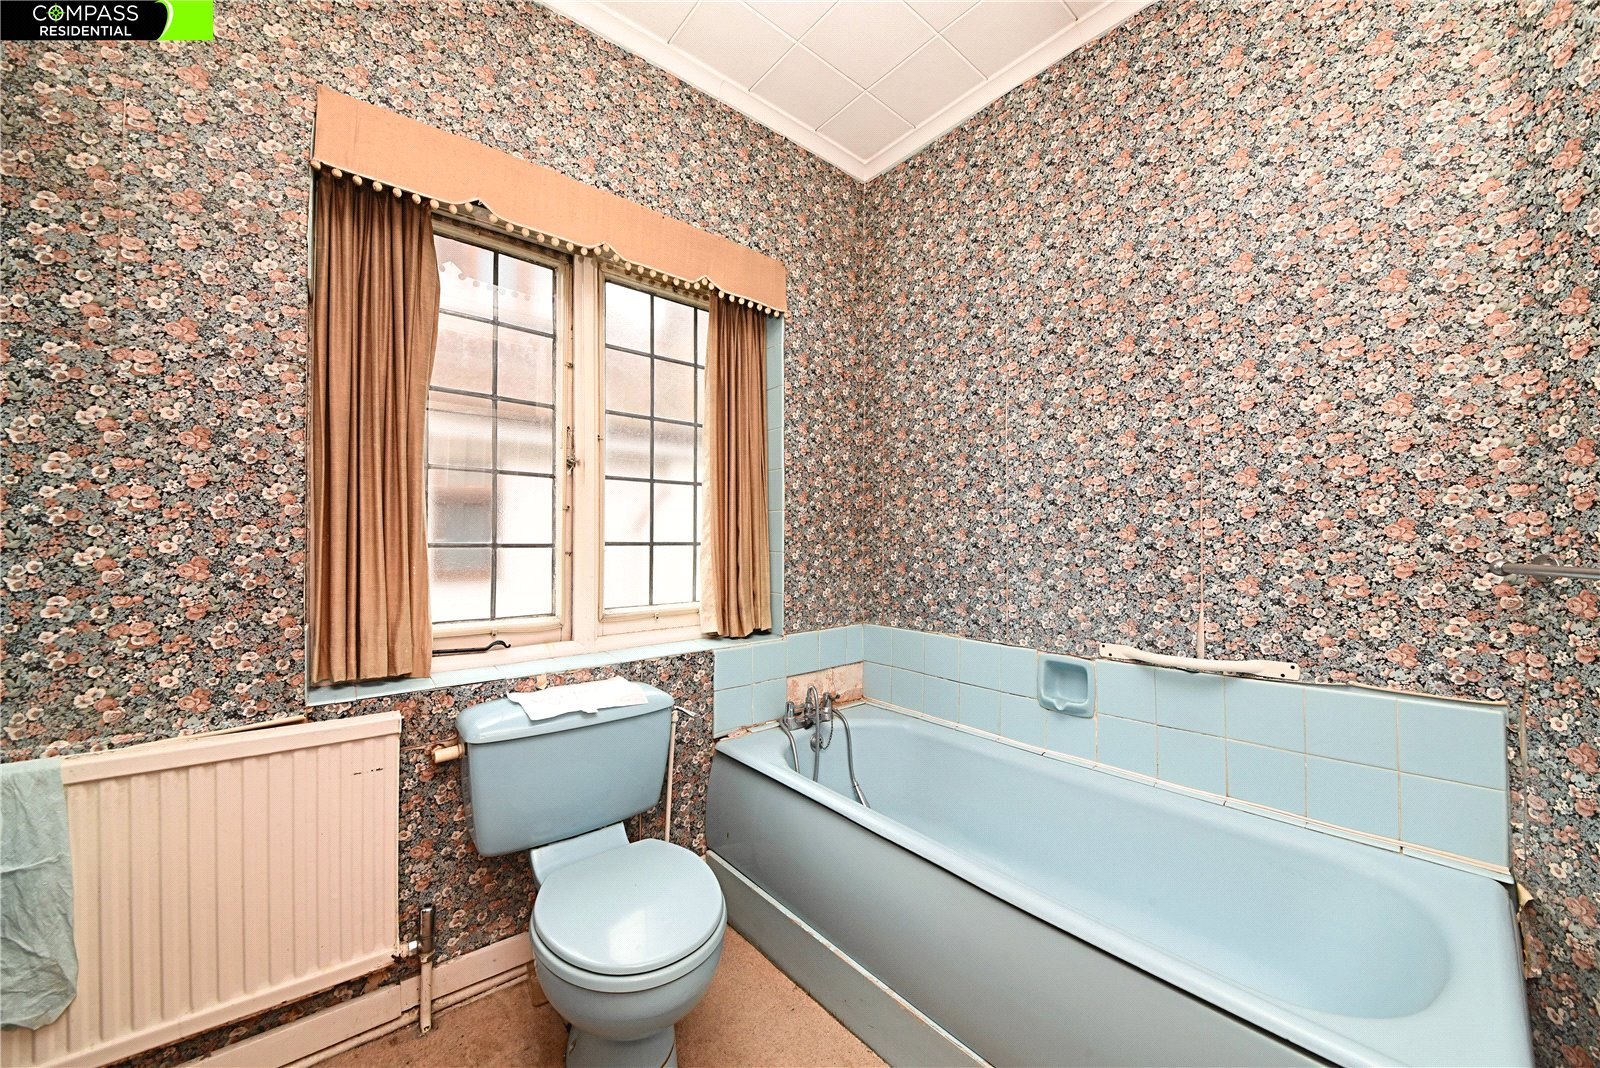 6 bed house for sale in Whetstone, N20 0NN 4